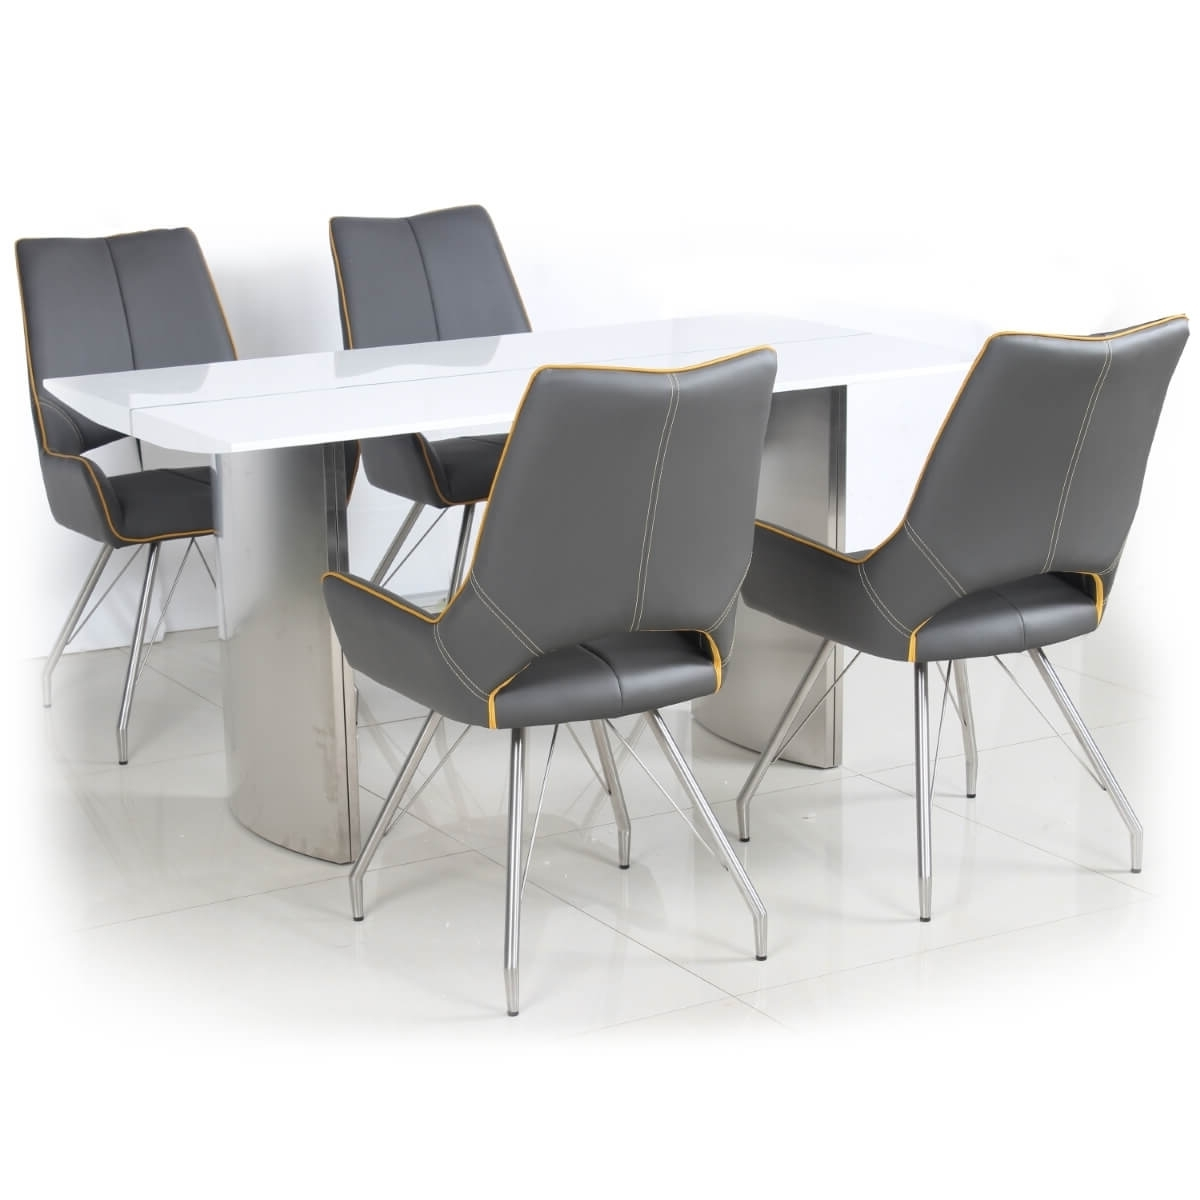 Most Recent Gloss Dining Sets Intended For Dining Set – White High Gloss Dining Table And 4 Grey Dining Chairs (View 15 of 25)